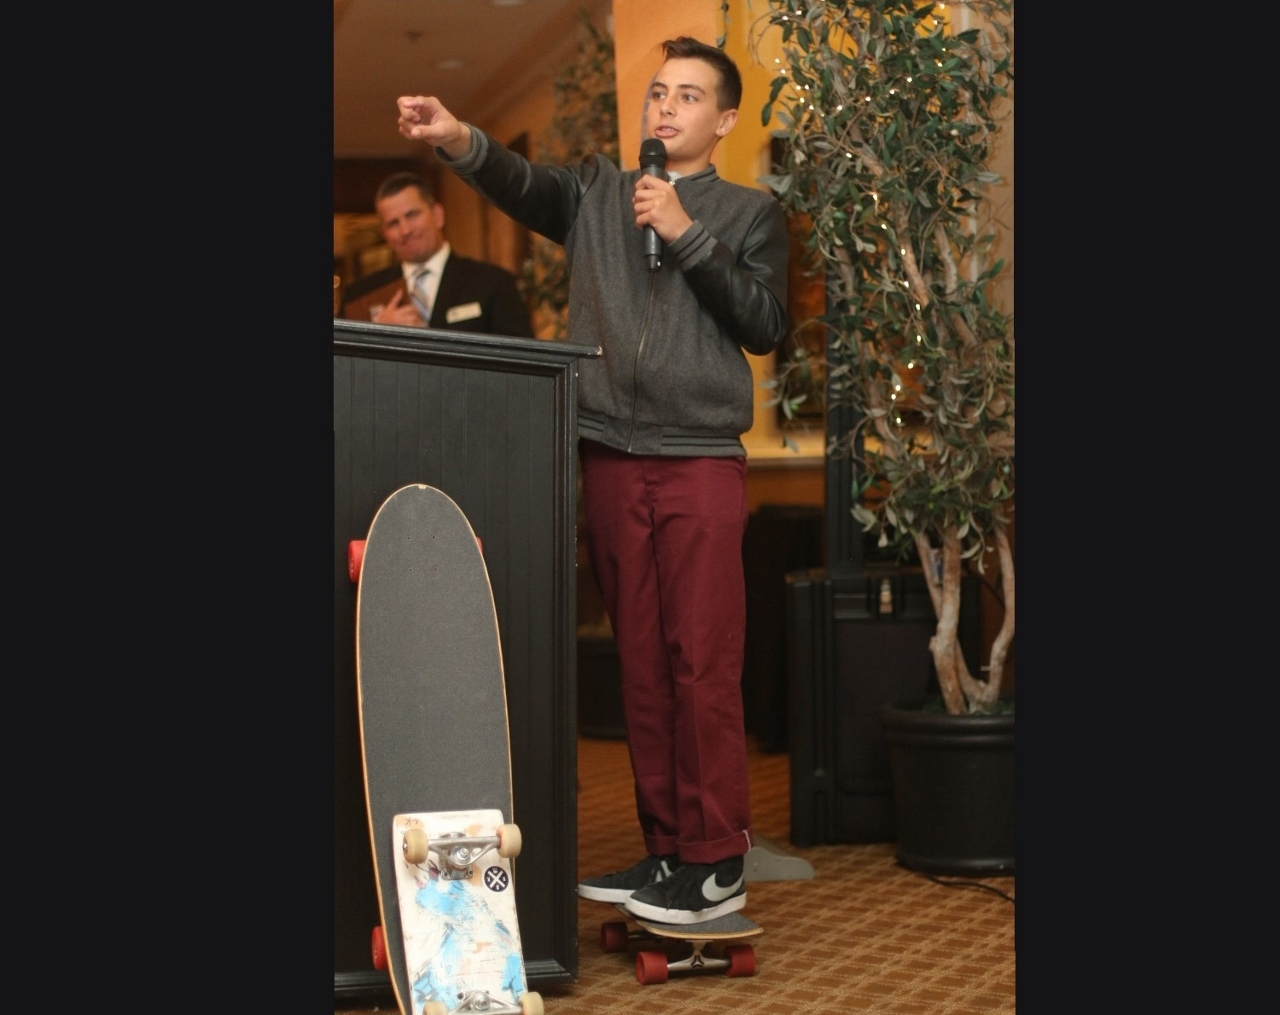 Carson Kropfl speaks to the audience while standing on a Locker Board, which he invented.